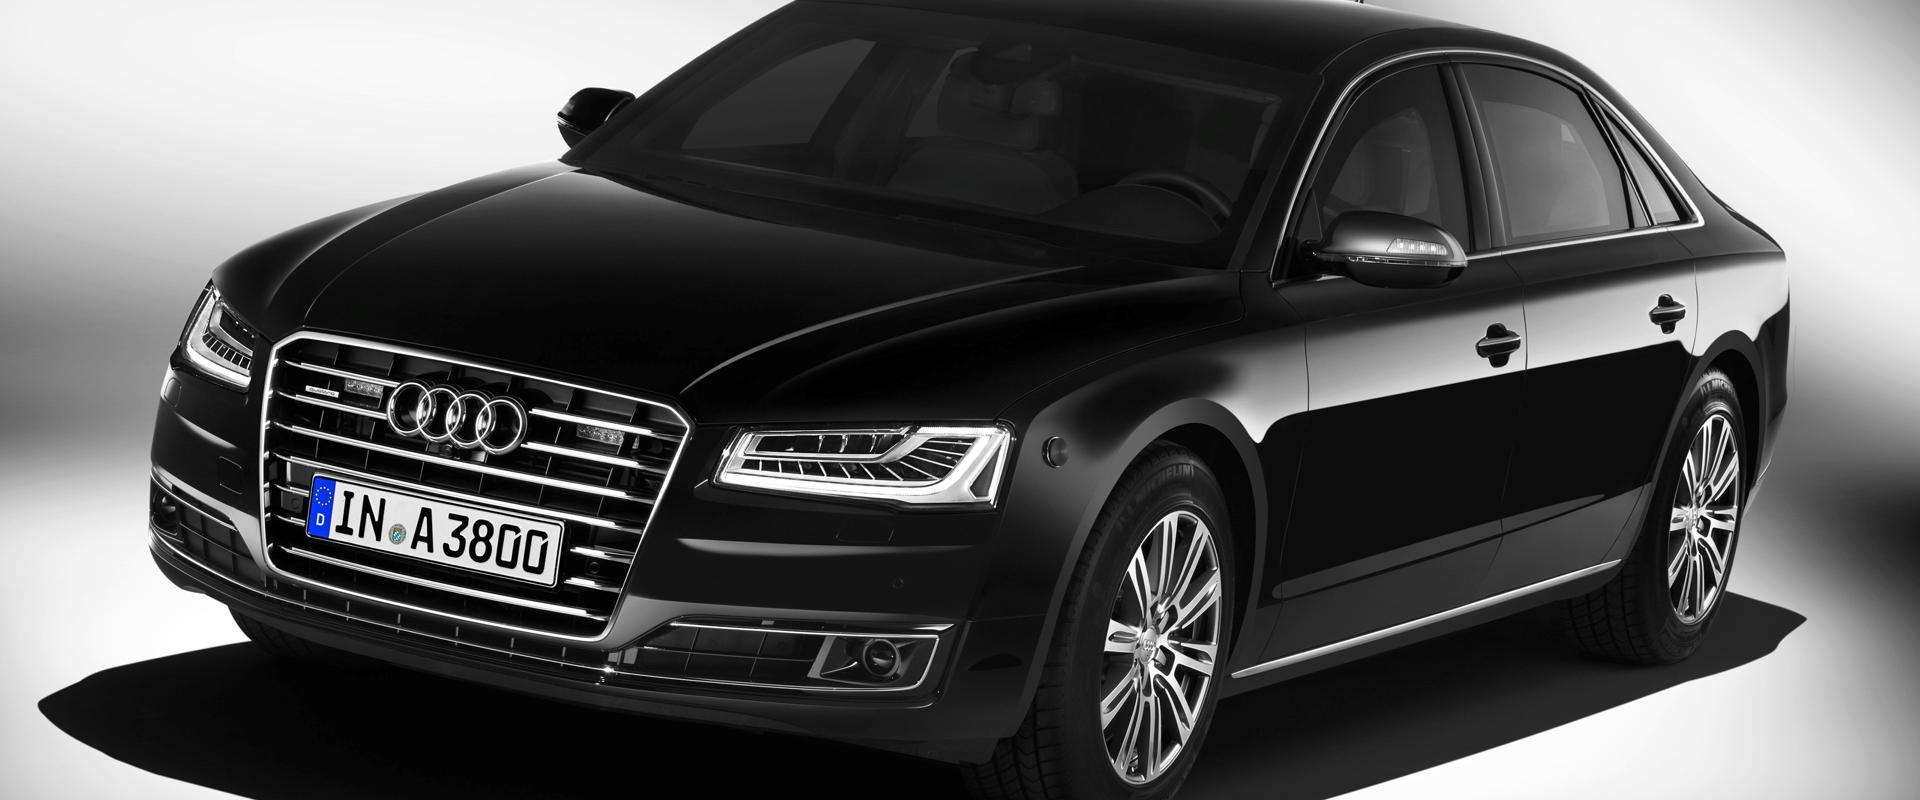 Neosvojiva tvrđava: Audi A8 L Security